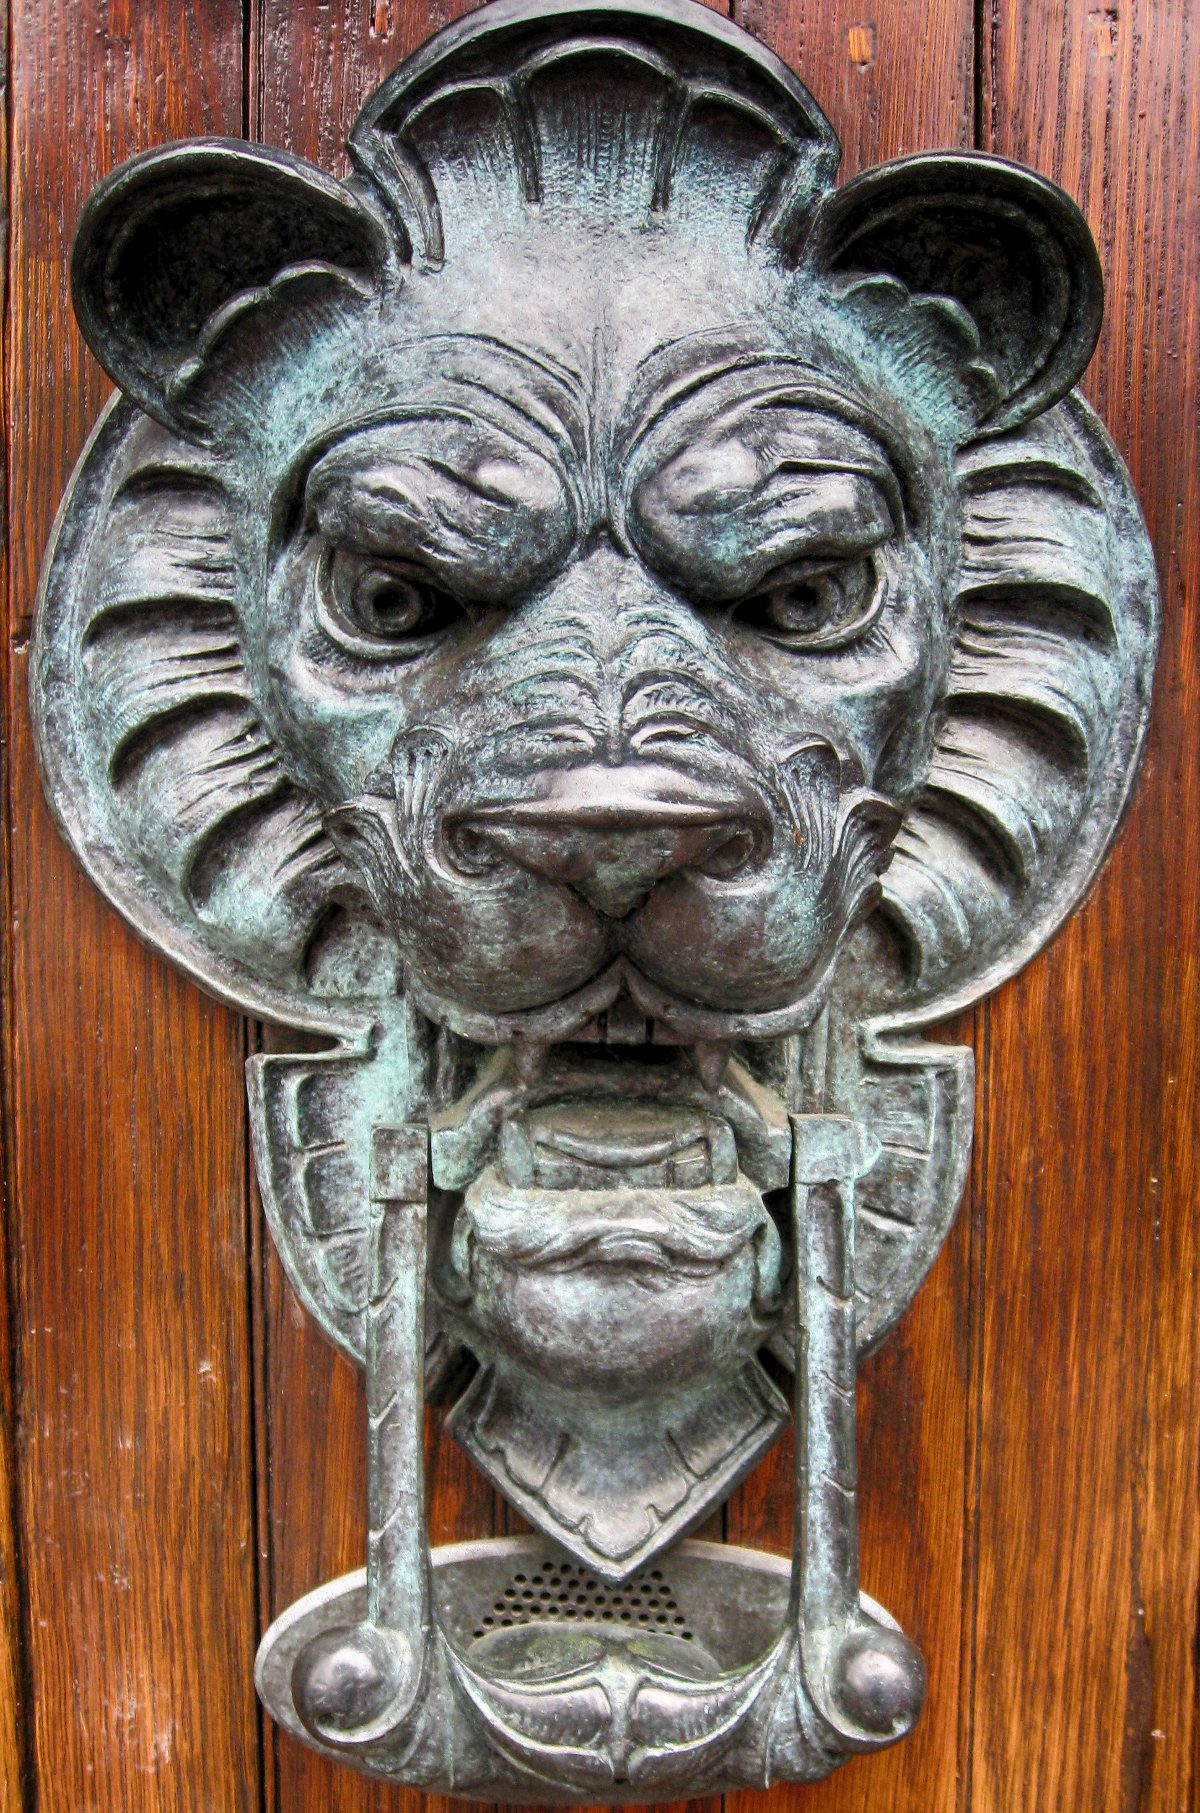 Lion's head door knocker in Beacon Hill, Boston